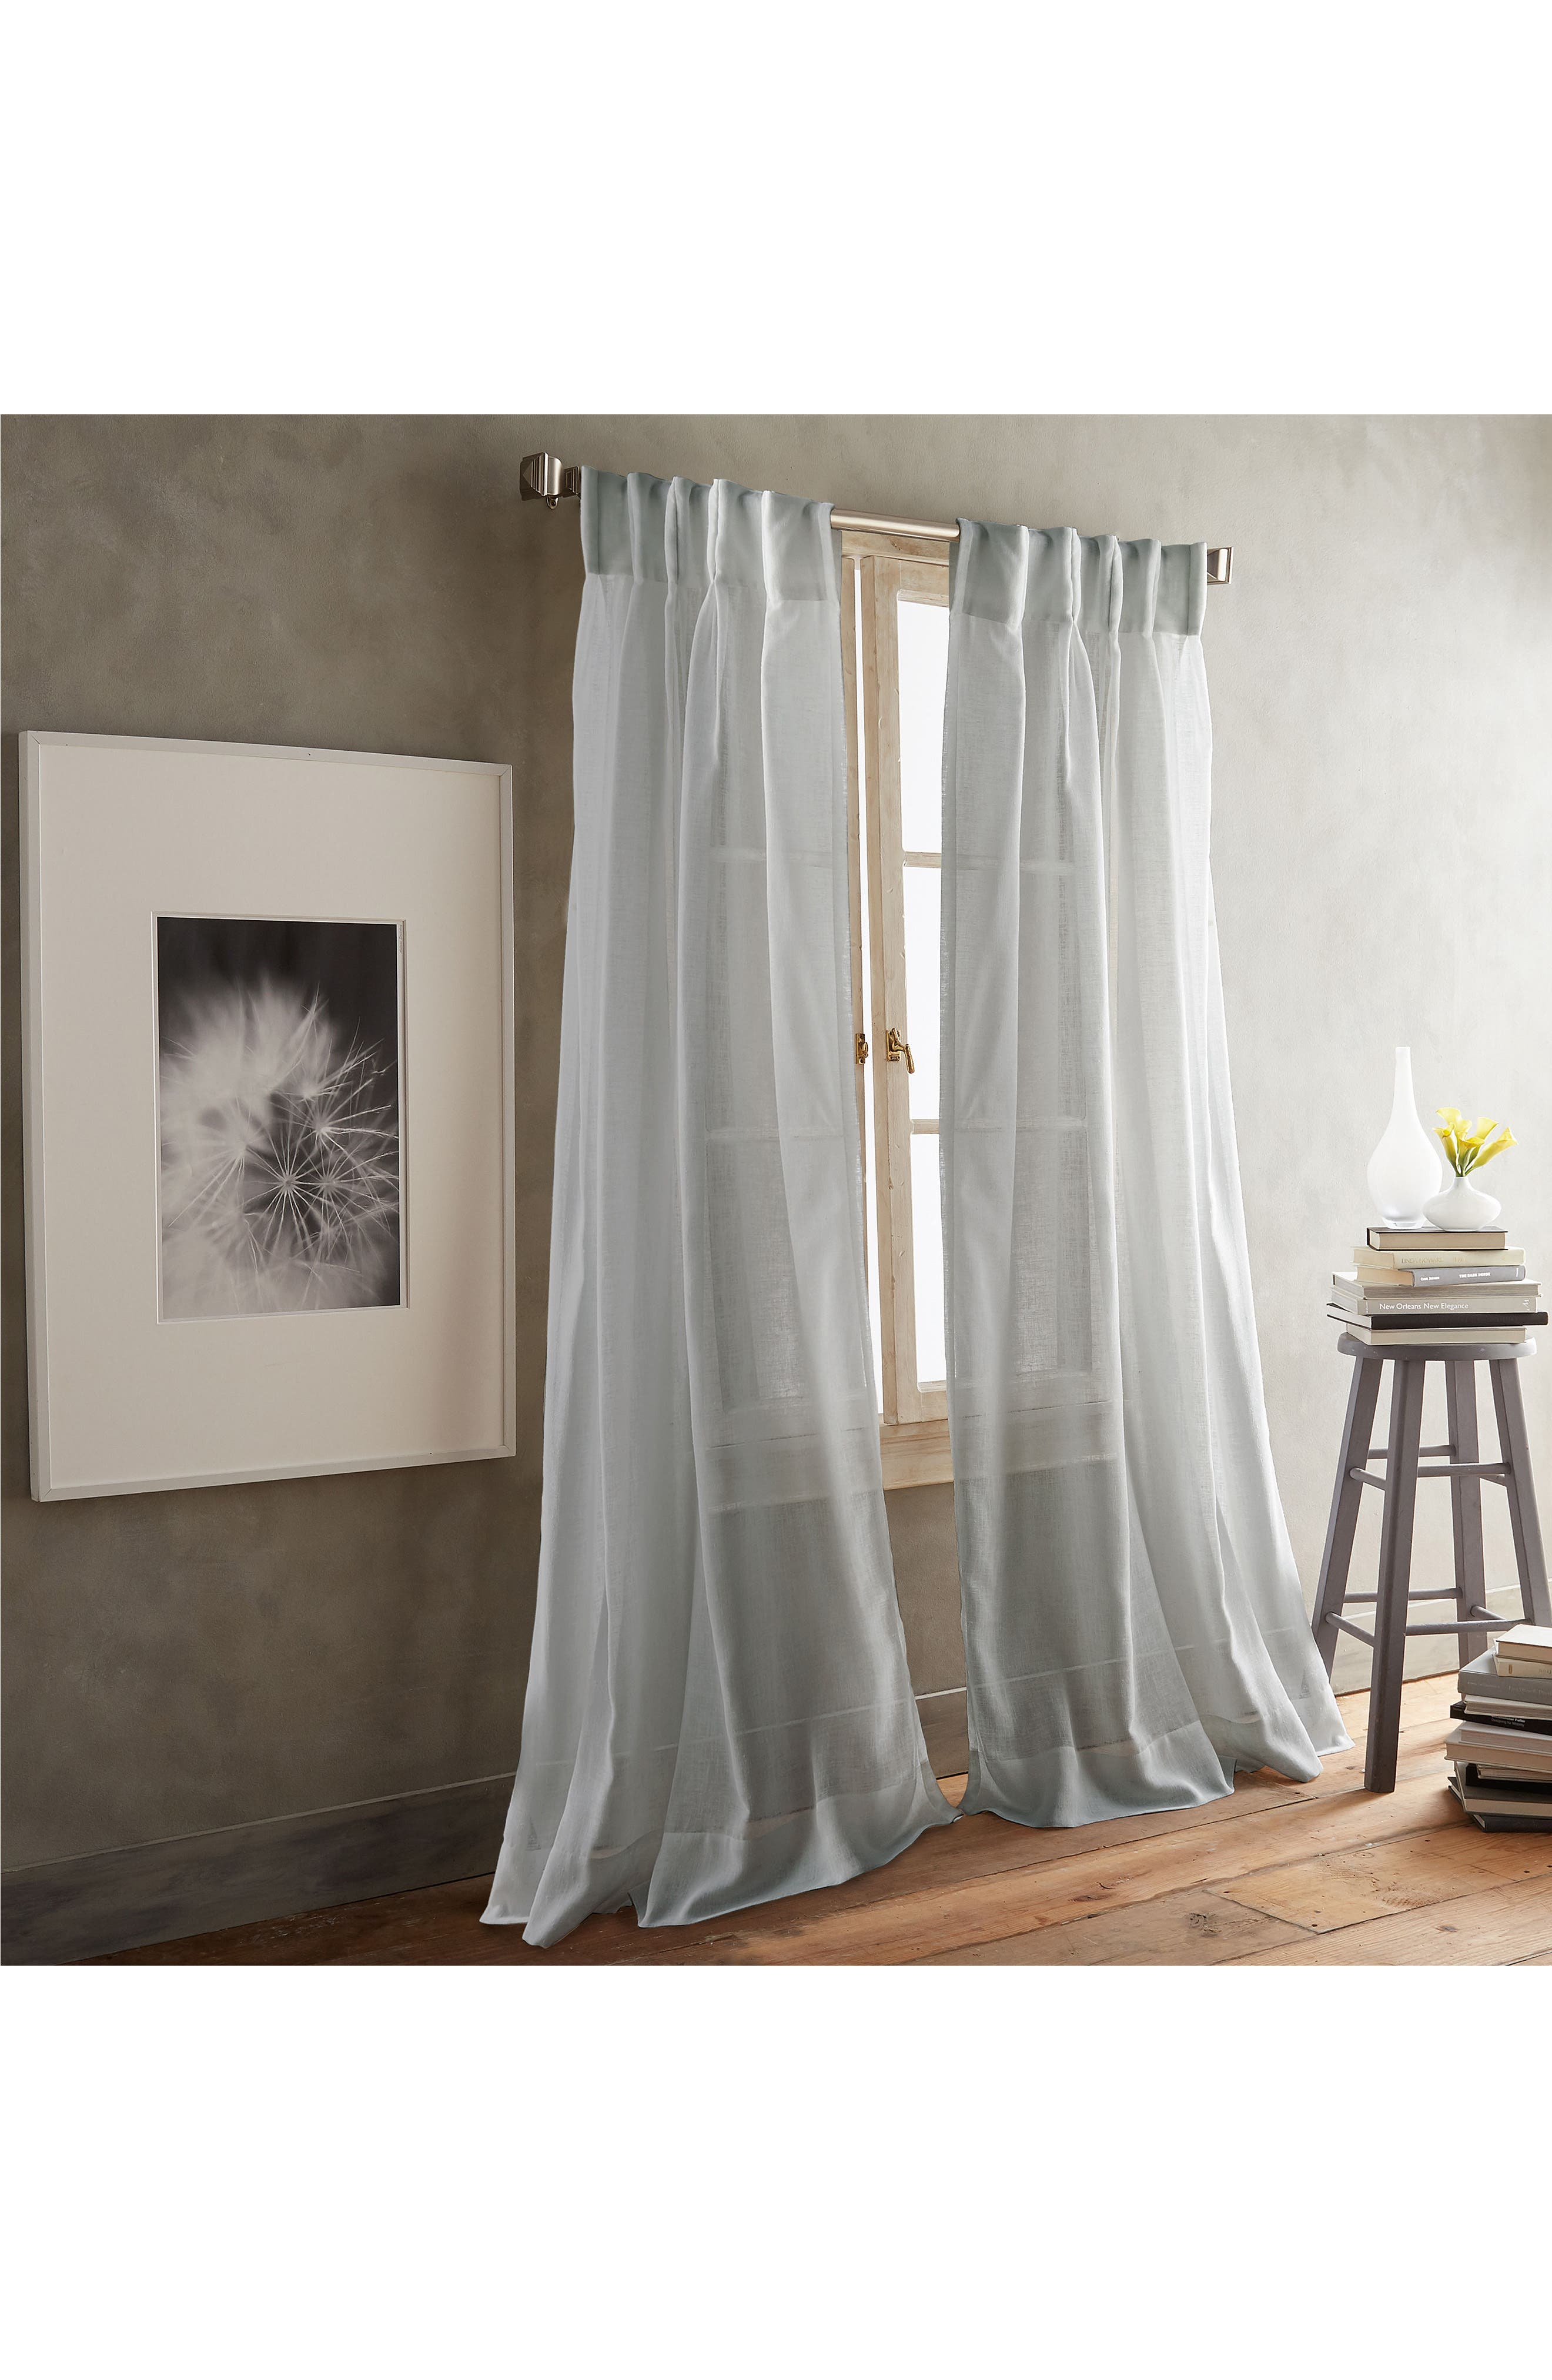 window treatment panels two story dkny paradox inverted pleat back tab set of window panels treatments curtains valances nordstrom